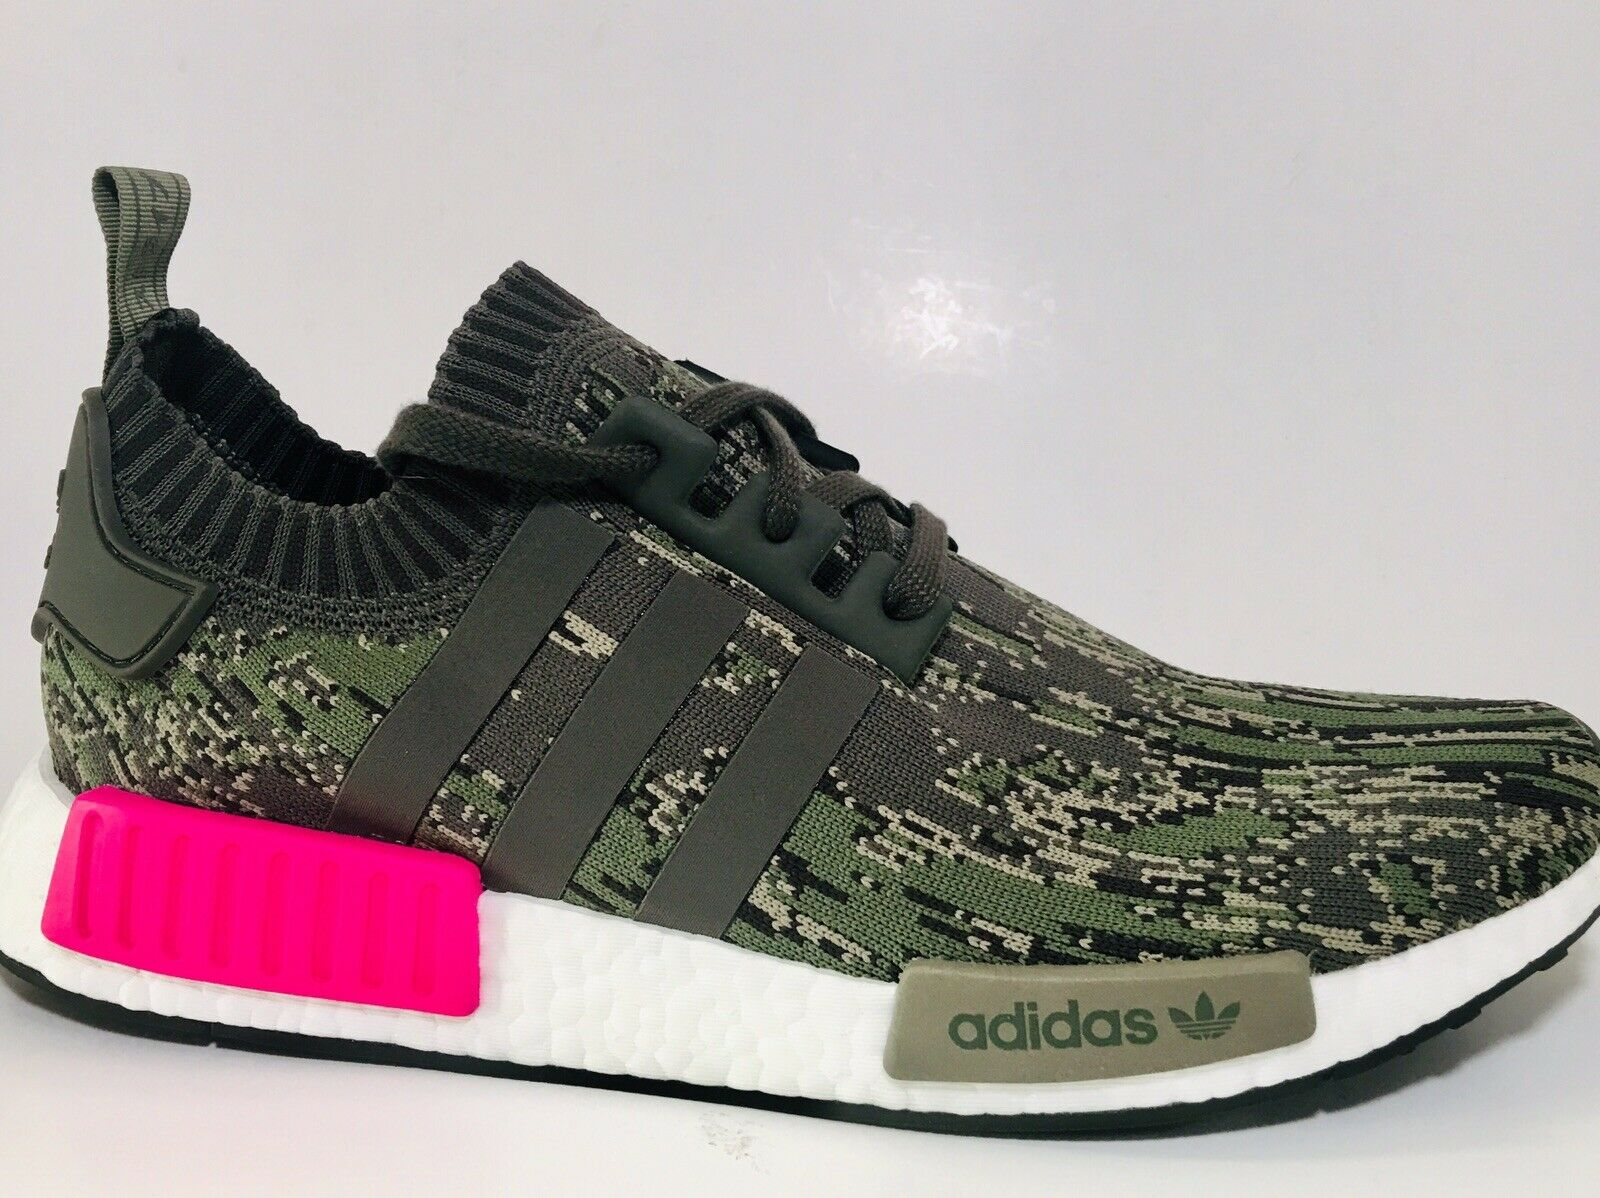 Adidas NMD R1 Primeknit shoes Mens Size 11 Camo Pink Camouflage Orig Price